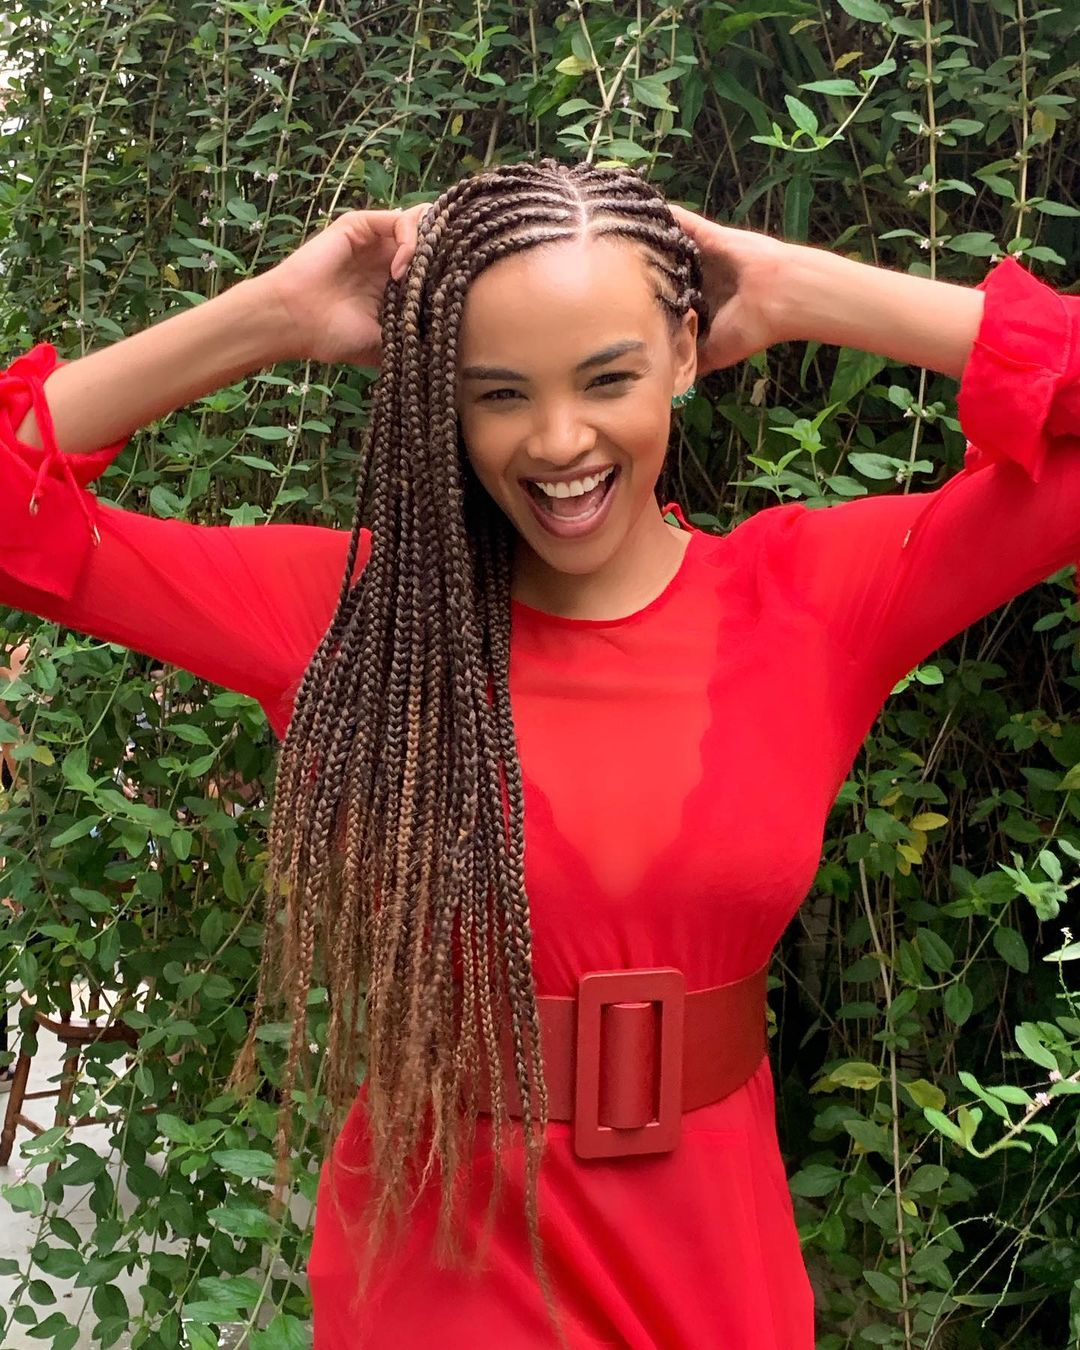 1. Are you a fan of braids